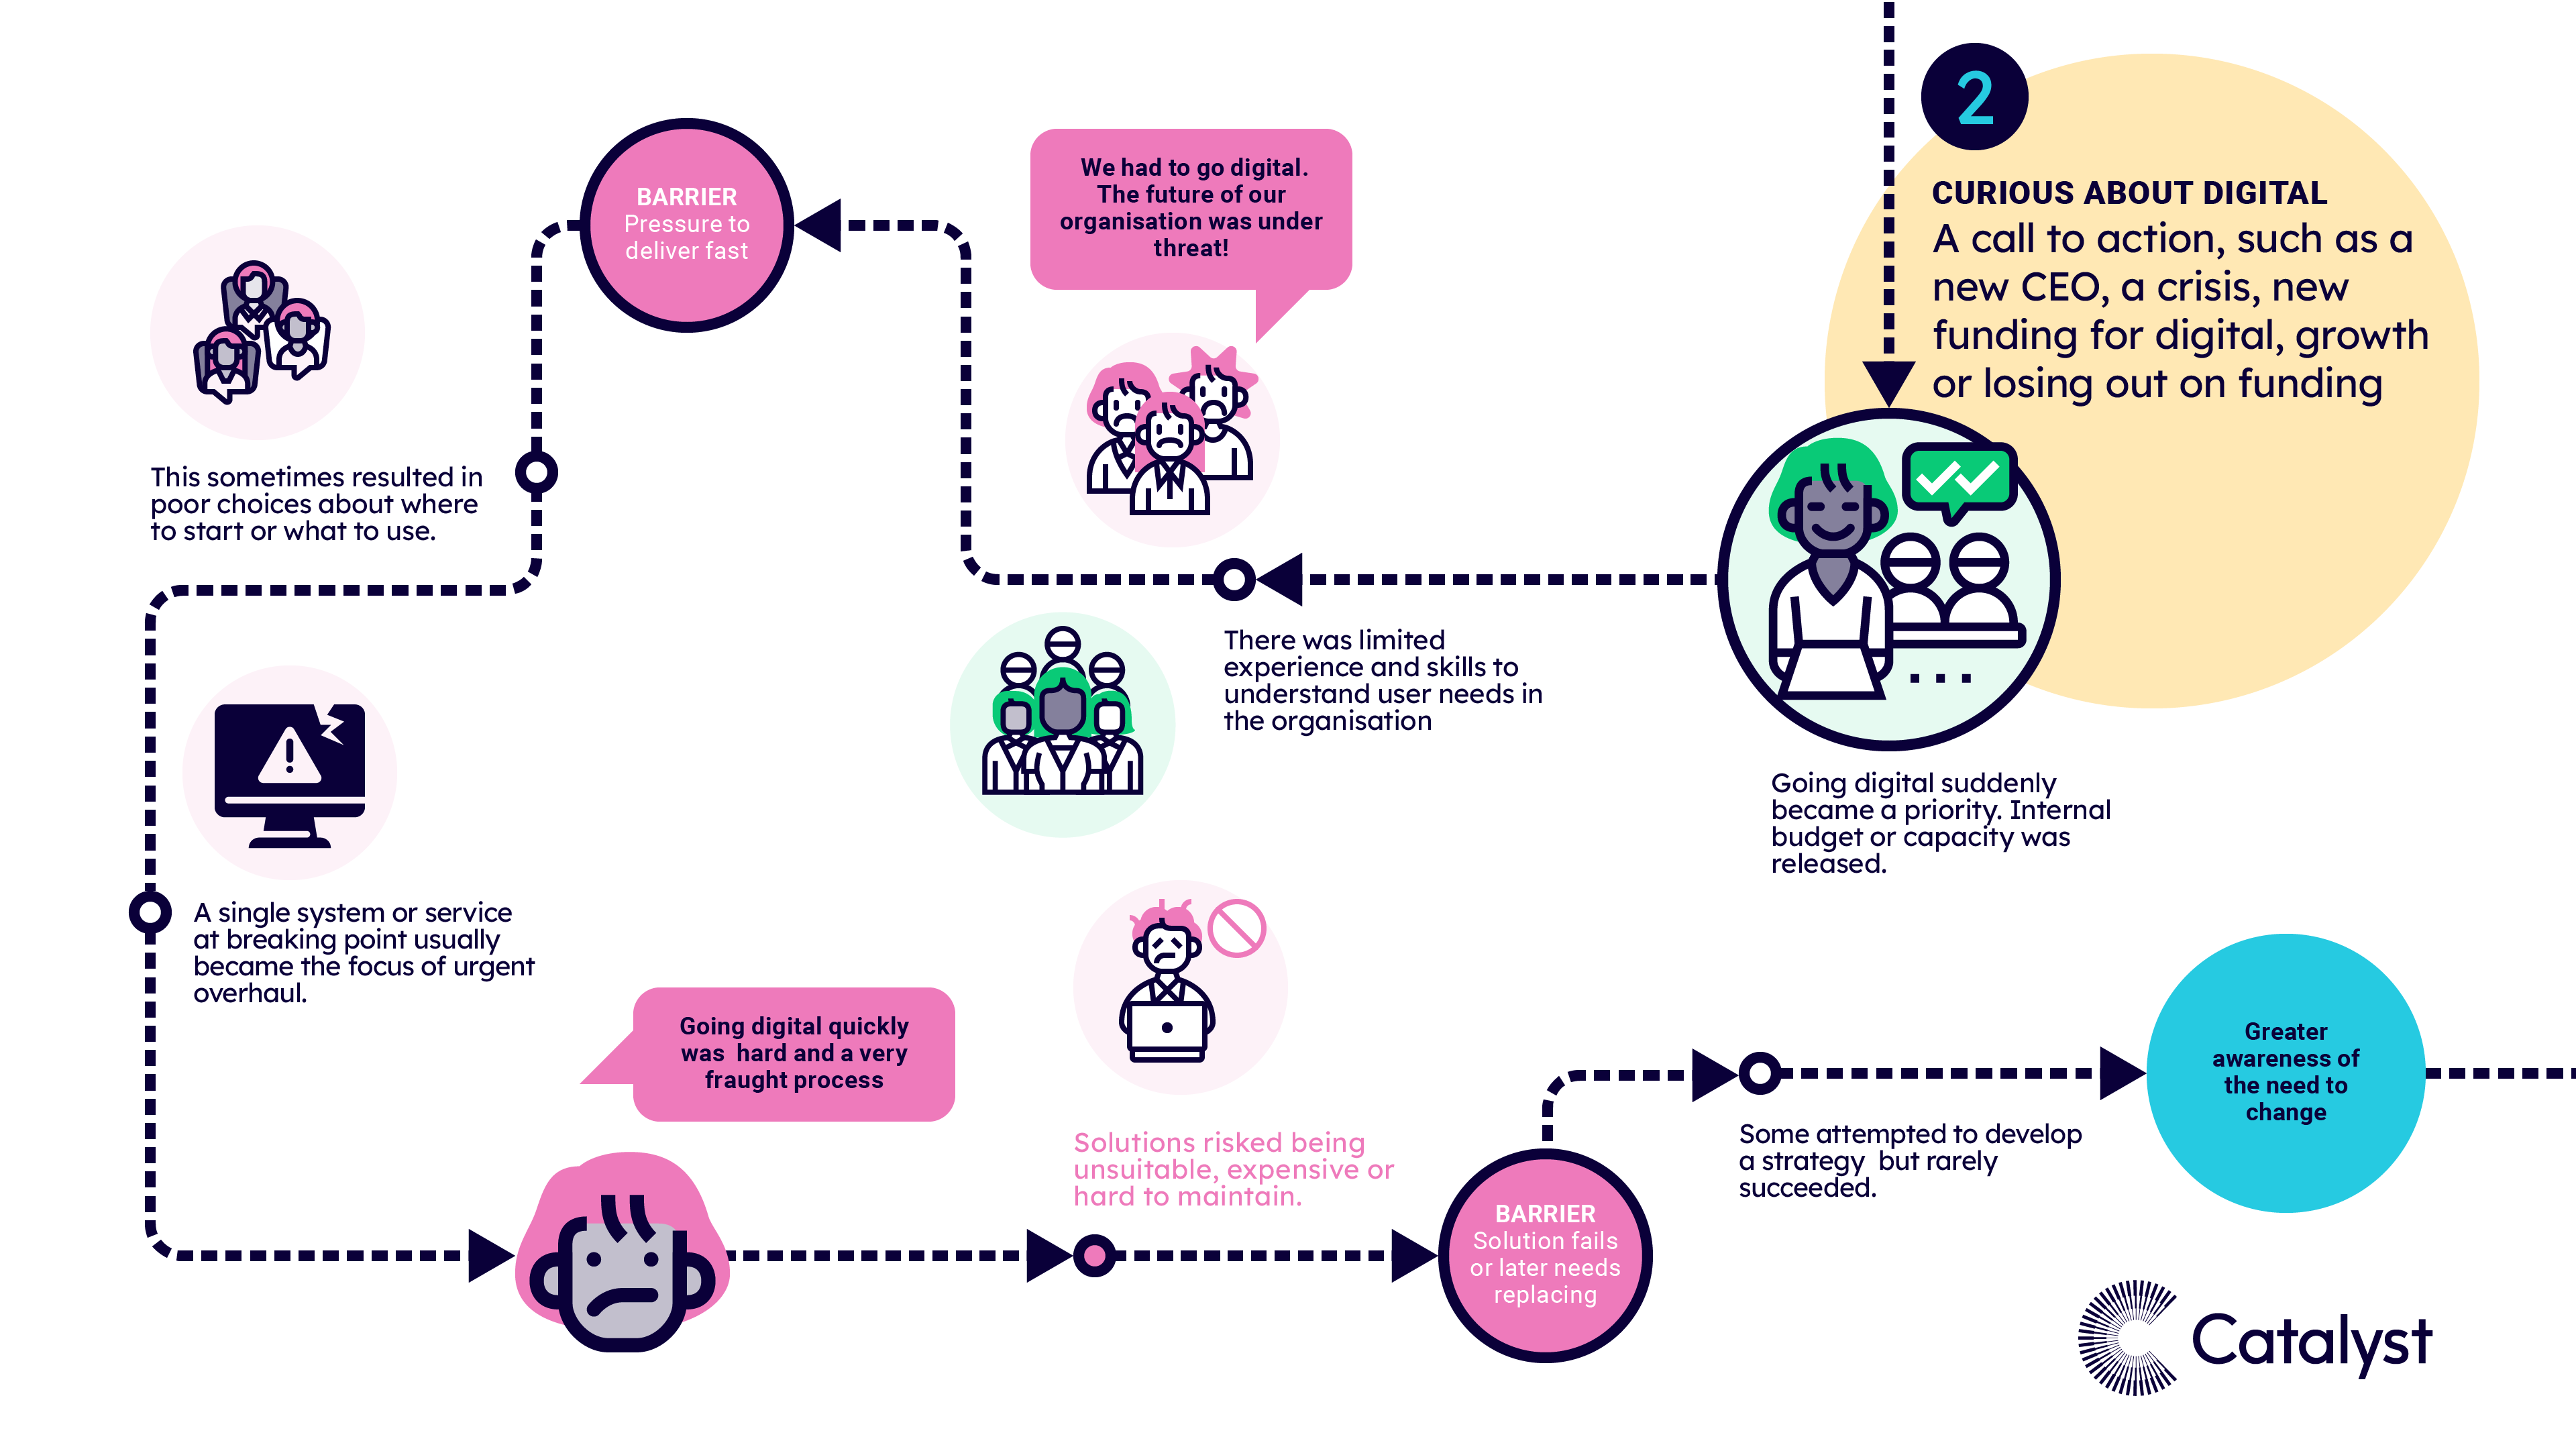 A visual map of pattern 2, when charities were at the curious stage and a call to action instigated change. The text highlights the most common experiences, risk factors, barriers and enablers at this stage of the journey.